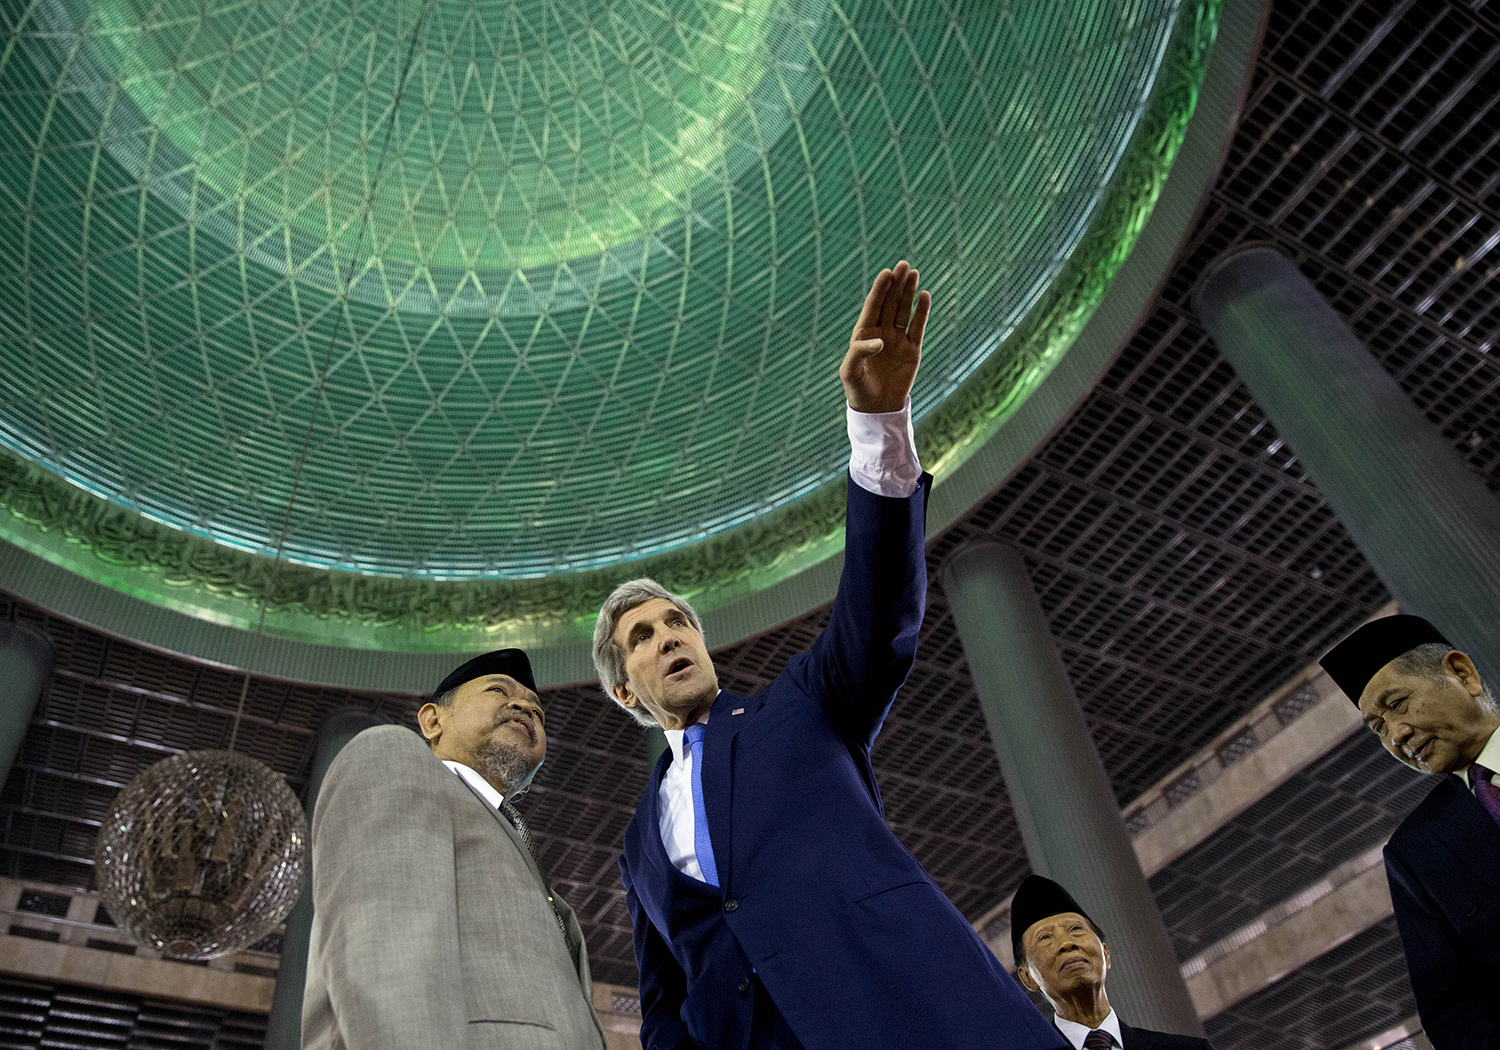 Kerry, then U.S. Secretary of State, visits the Istiqlal Mosque in Jakarta on Feb. 16, 2014. Kerry arrived in Indonesia on a visit to highlight concerns over climate change, after agreeing with China to boost joint efforts to fight global warming.